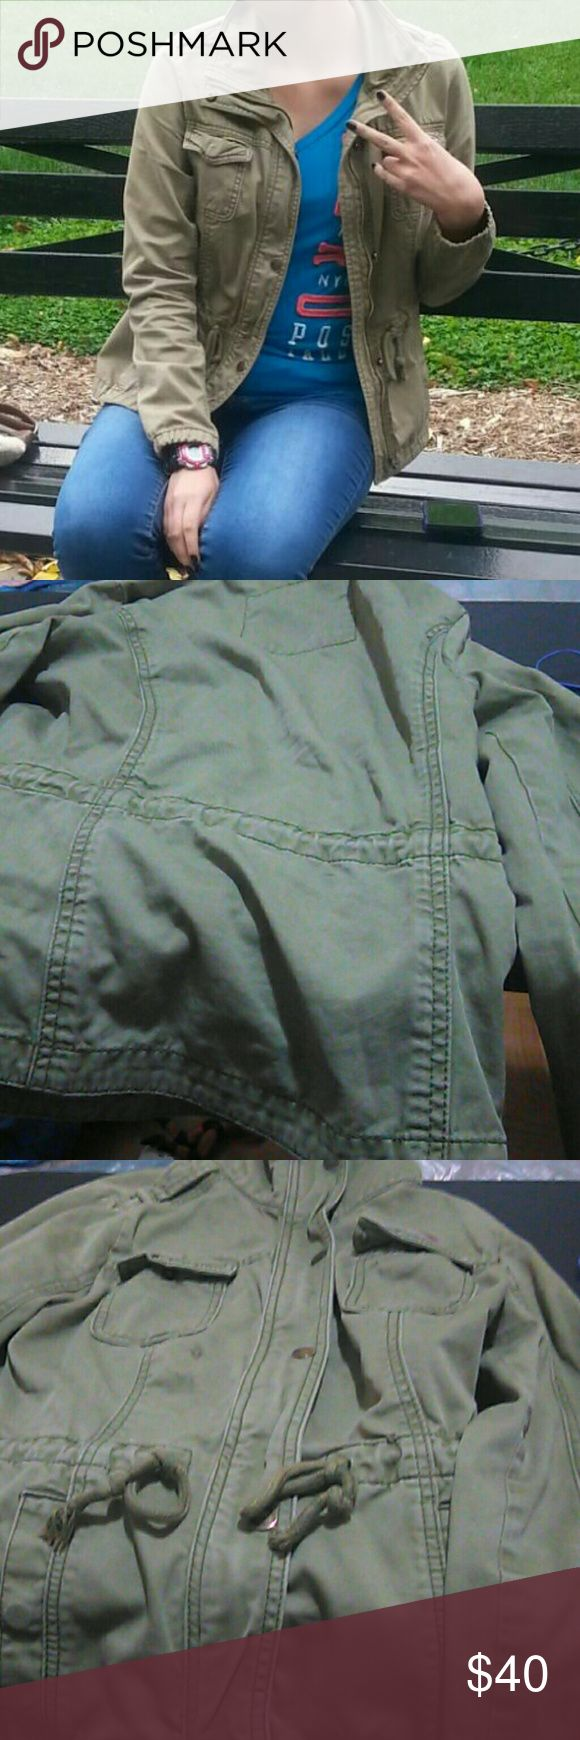 Military Jacket It is a green military jacket with four pockets. It has been worn before. It has a small stain on the left side below the top pocket. It perfect for any occasion. I am willing to make a offer. Hollister Jackets & Coats